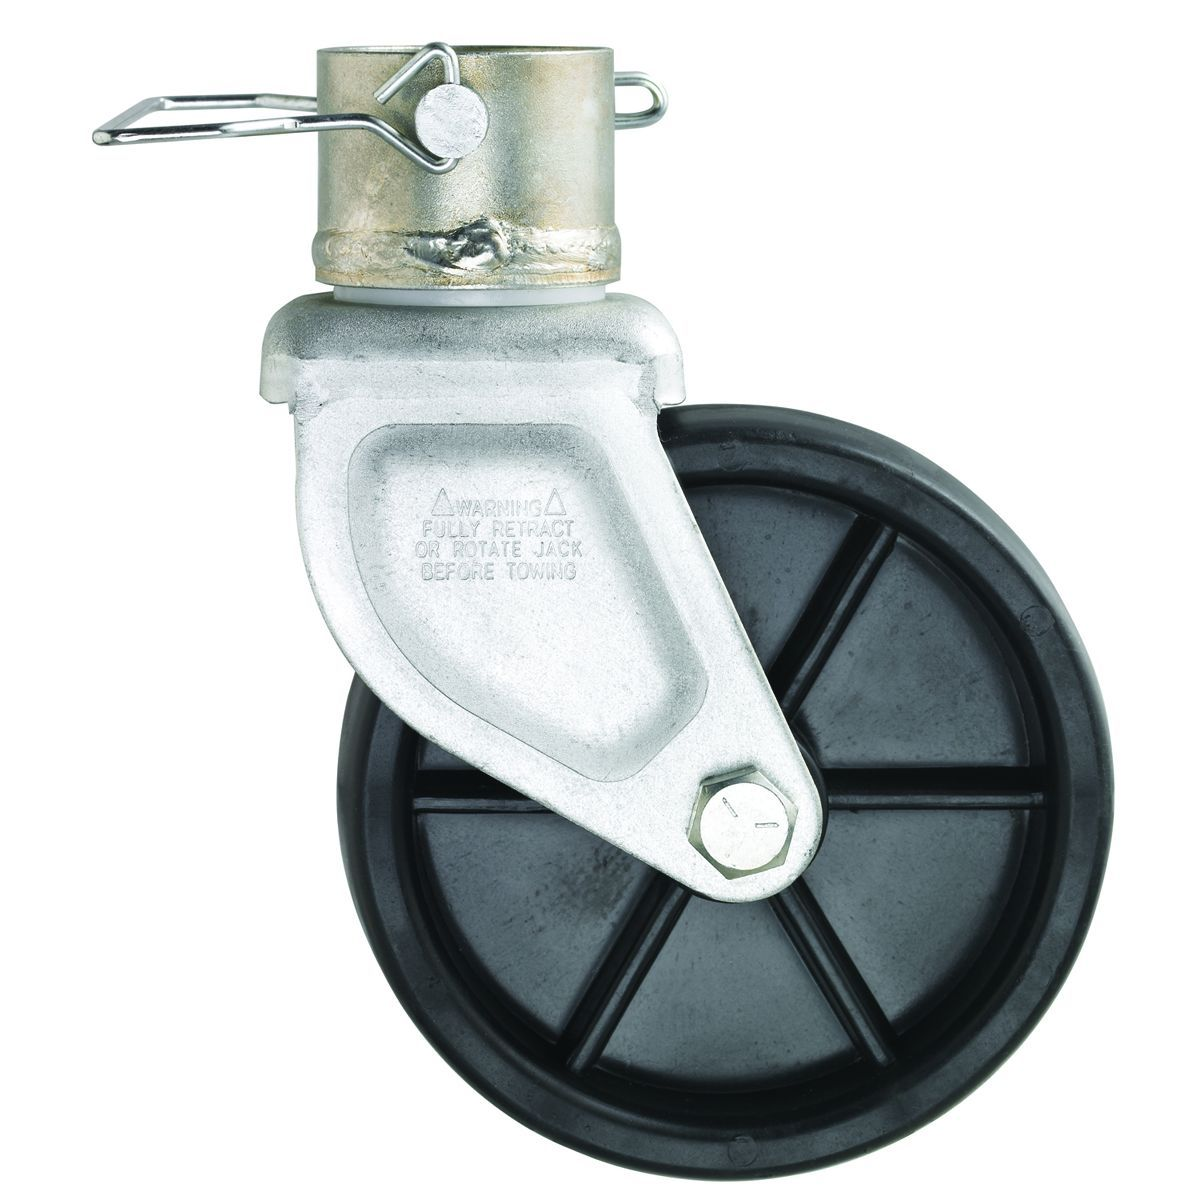 1400750340 Pro Series Hitch Jack Wheel Use With Pro Series Jacks